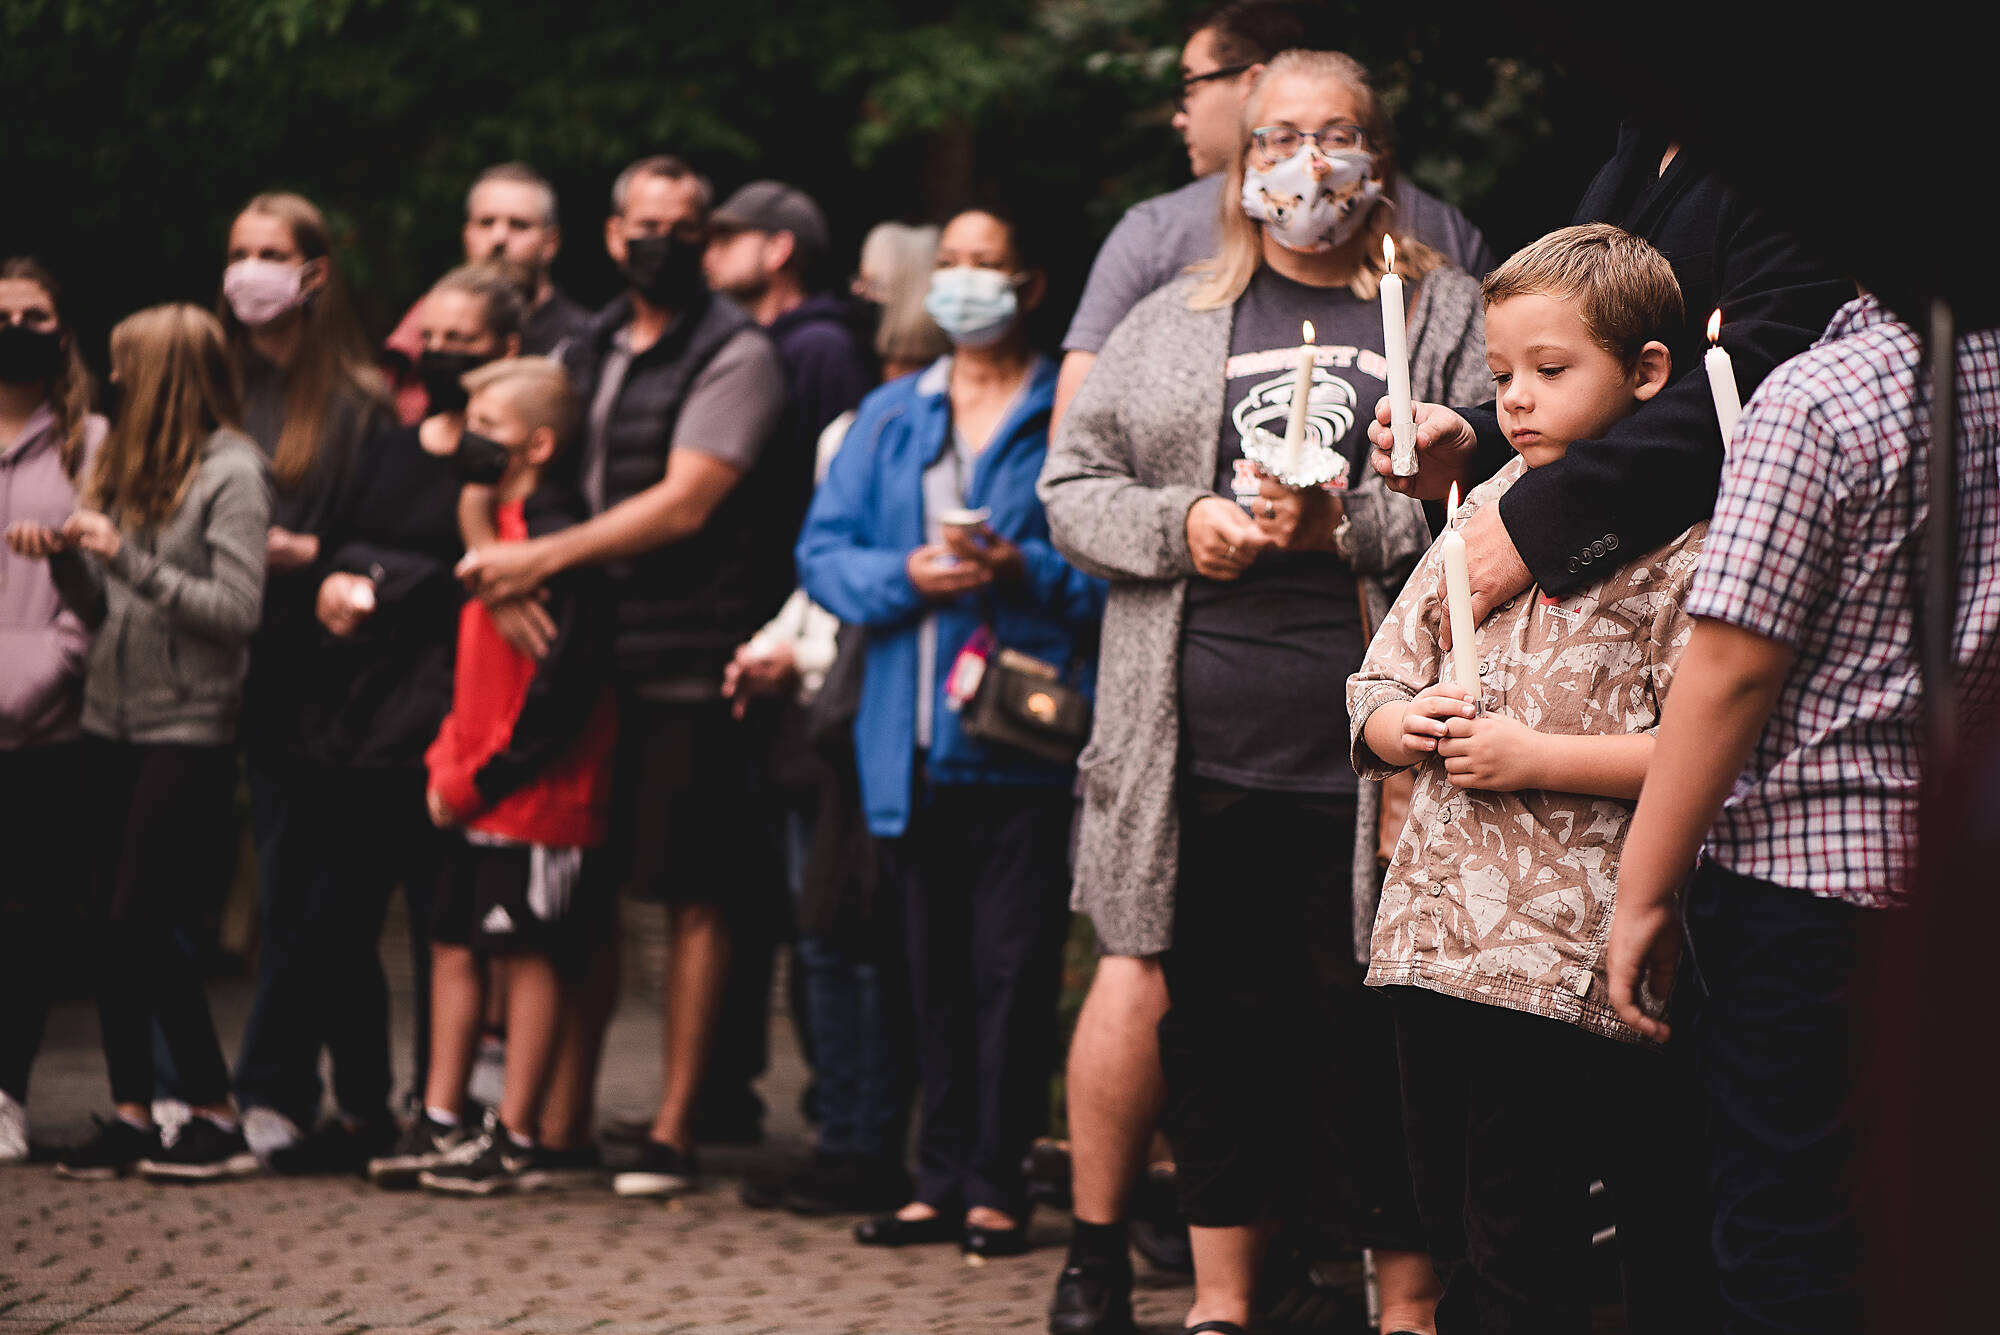 Hundreds gathered at Sendall Gardens in Langley on Sunday around 7 p.m. to light a candle for Naomi Onotera, who was last seen Aug. 28, 2021. (© JLS Photography/Special to the Langley Advance Times)